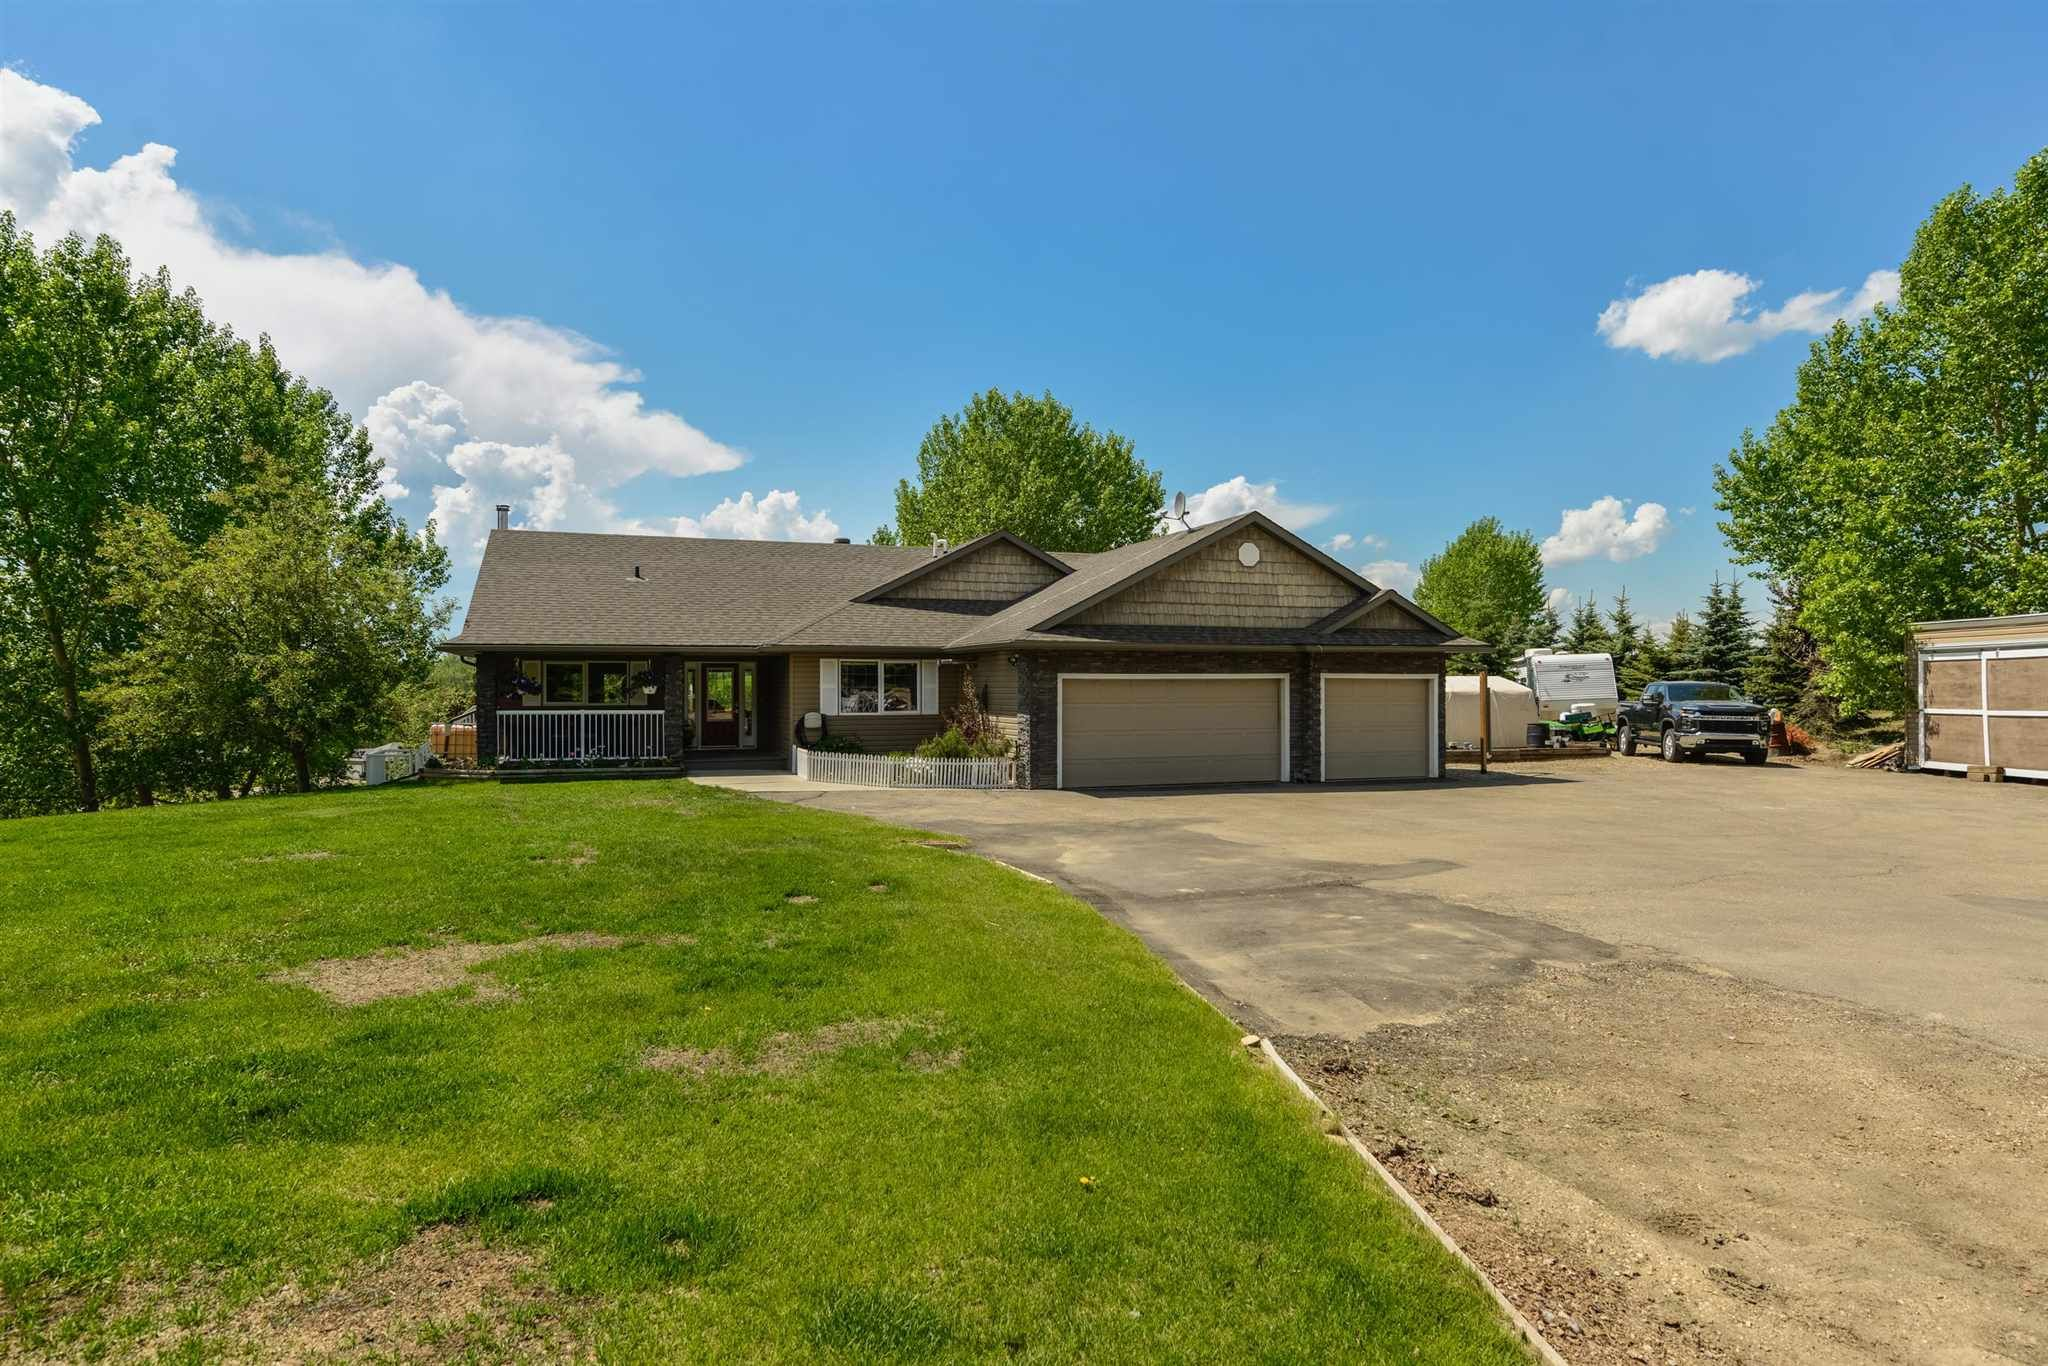 Main Photo: 47 53122 RGE RD 14: Rural Parkland County House for sale : MLS®# E4259241